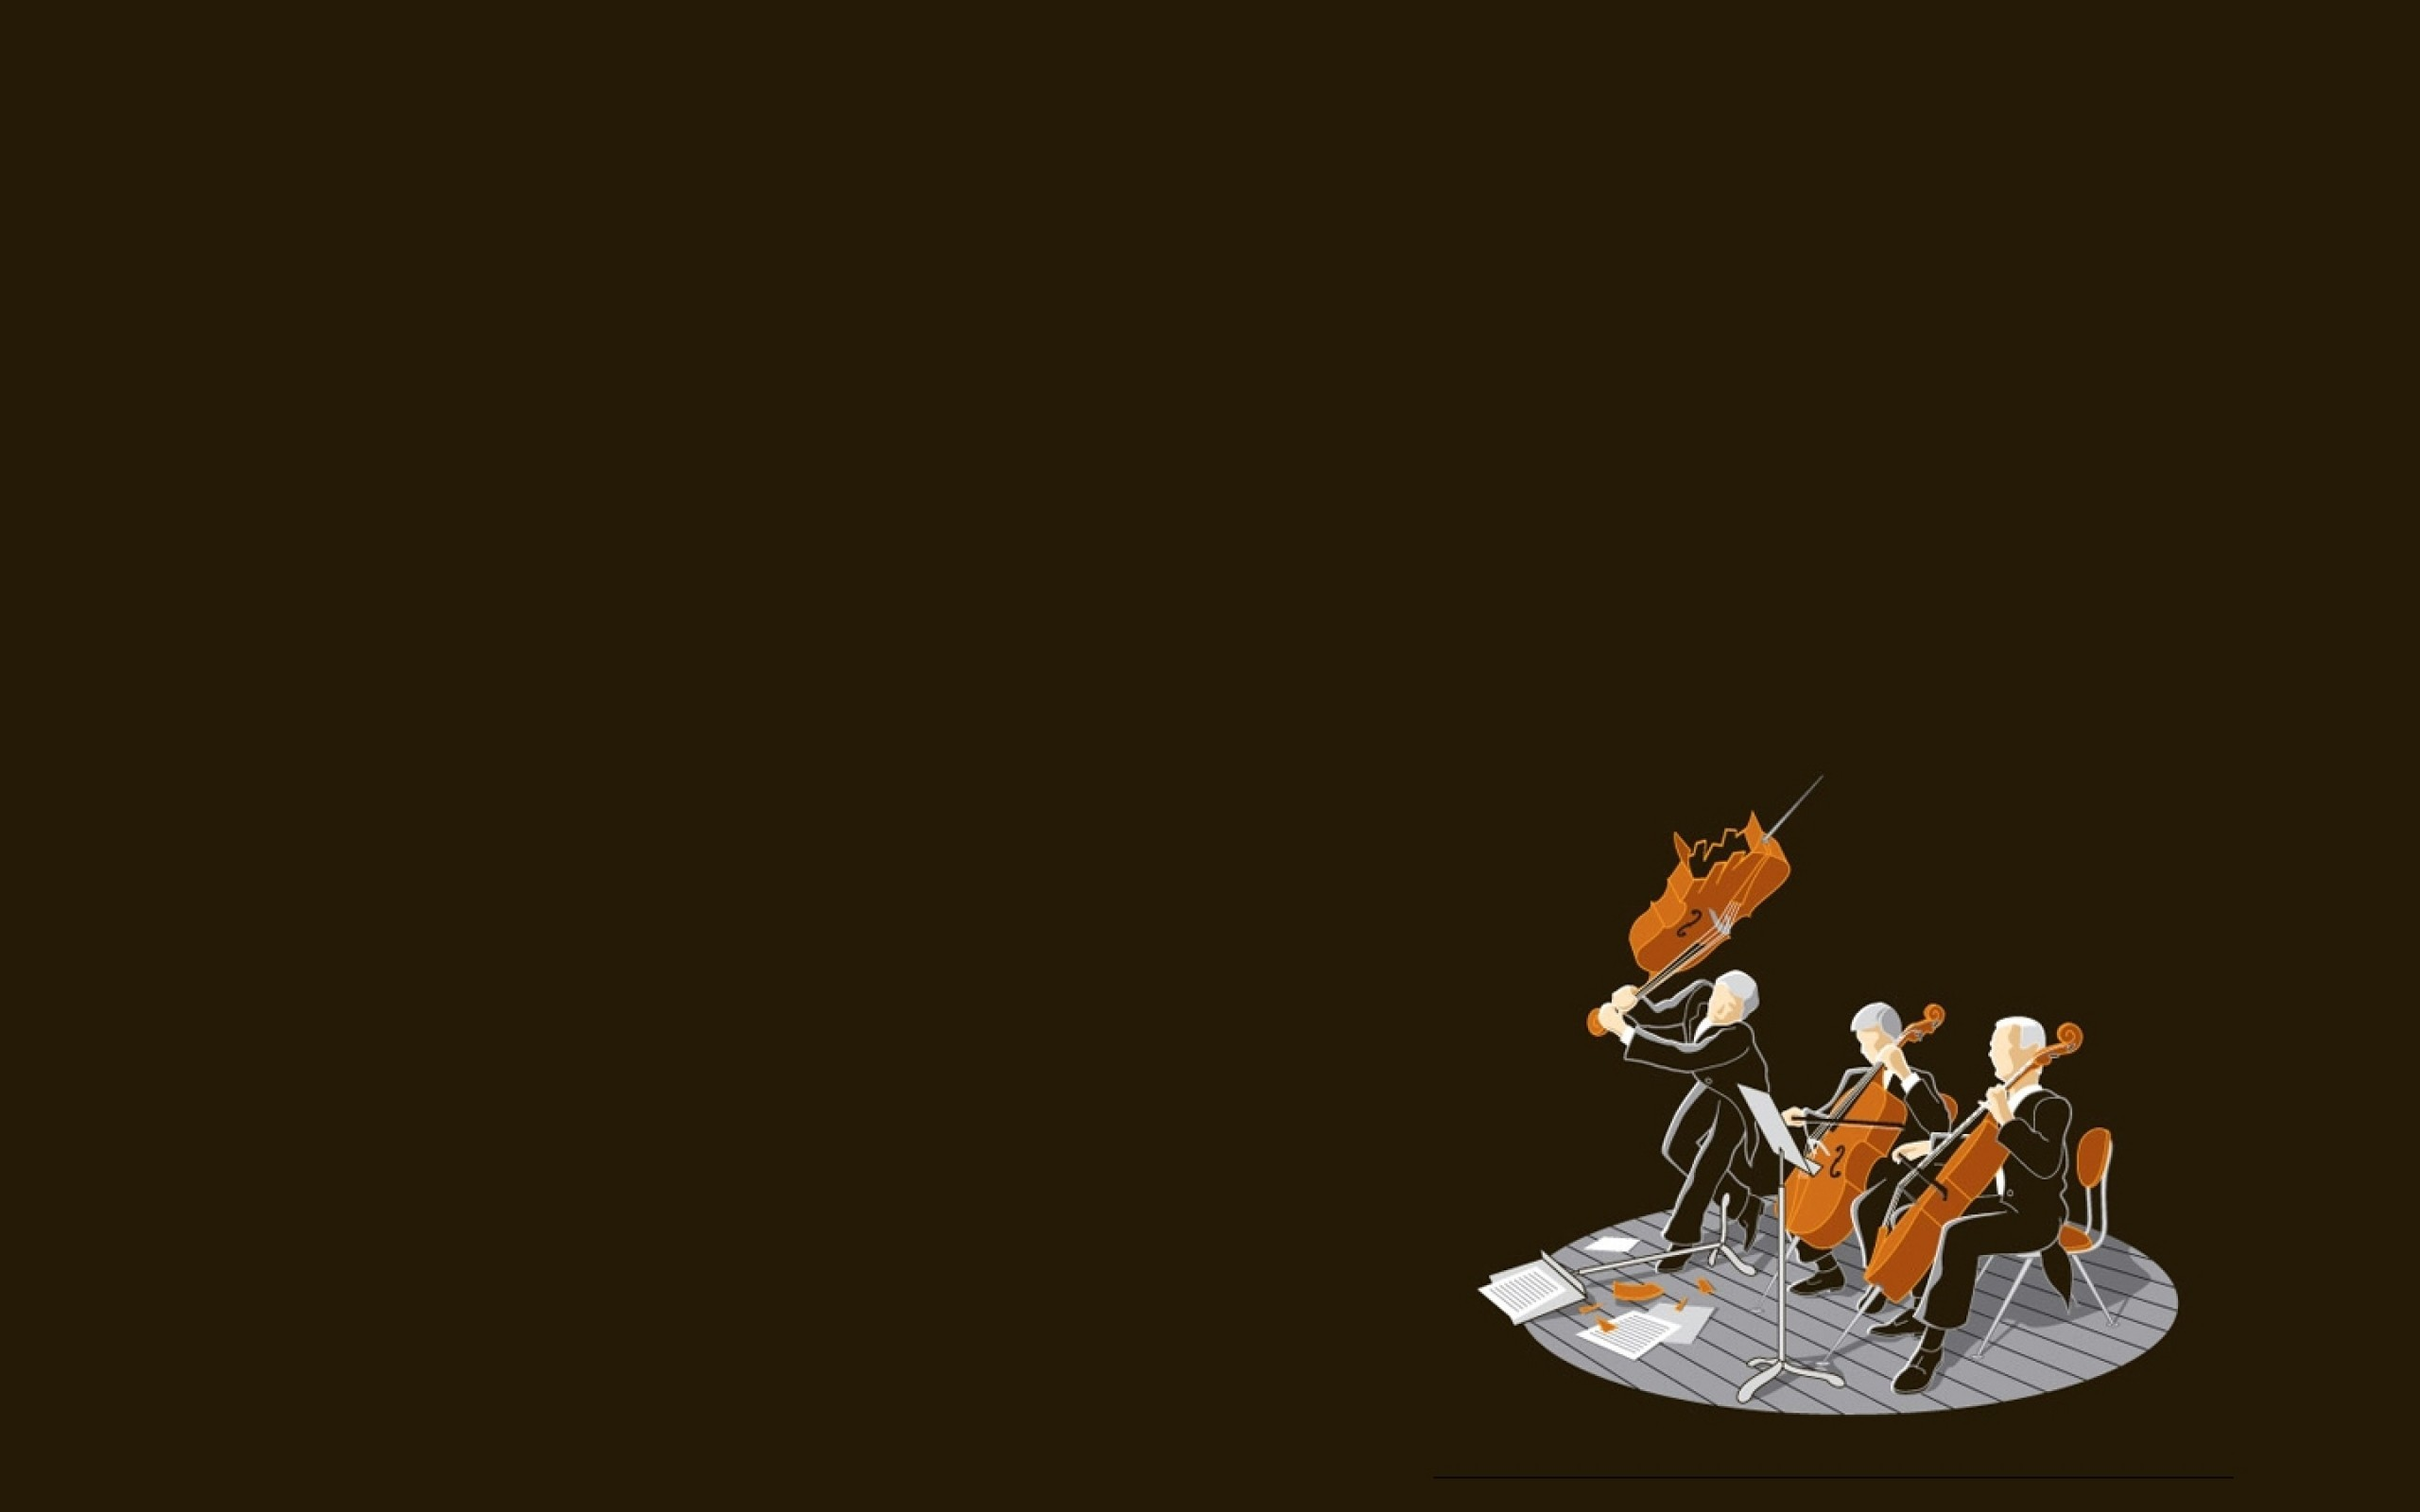 Res: 2560x1600, Playing the cello, brown background